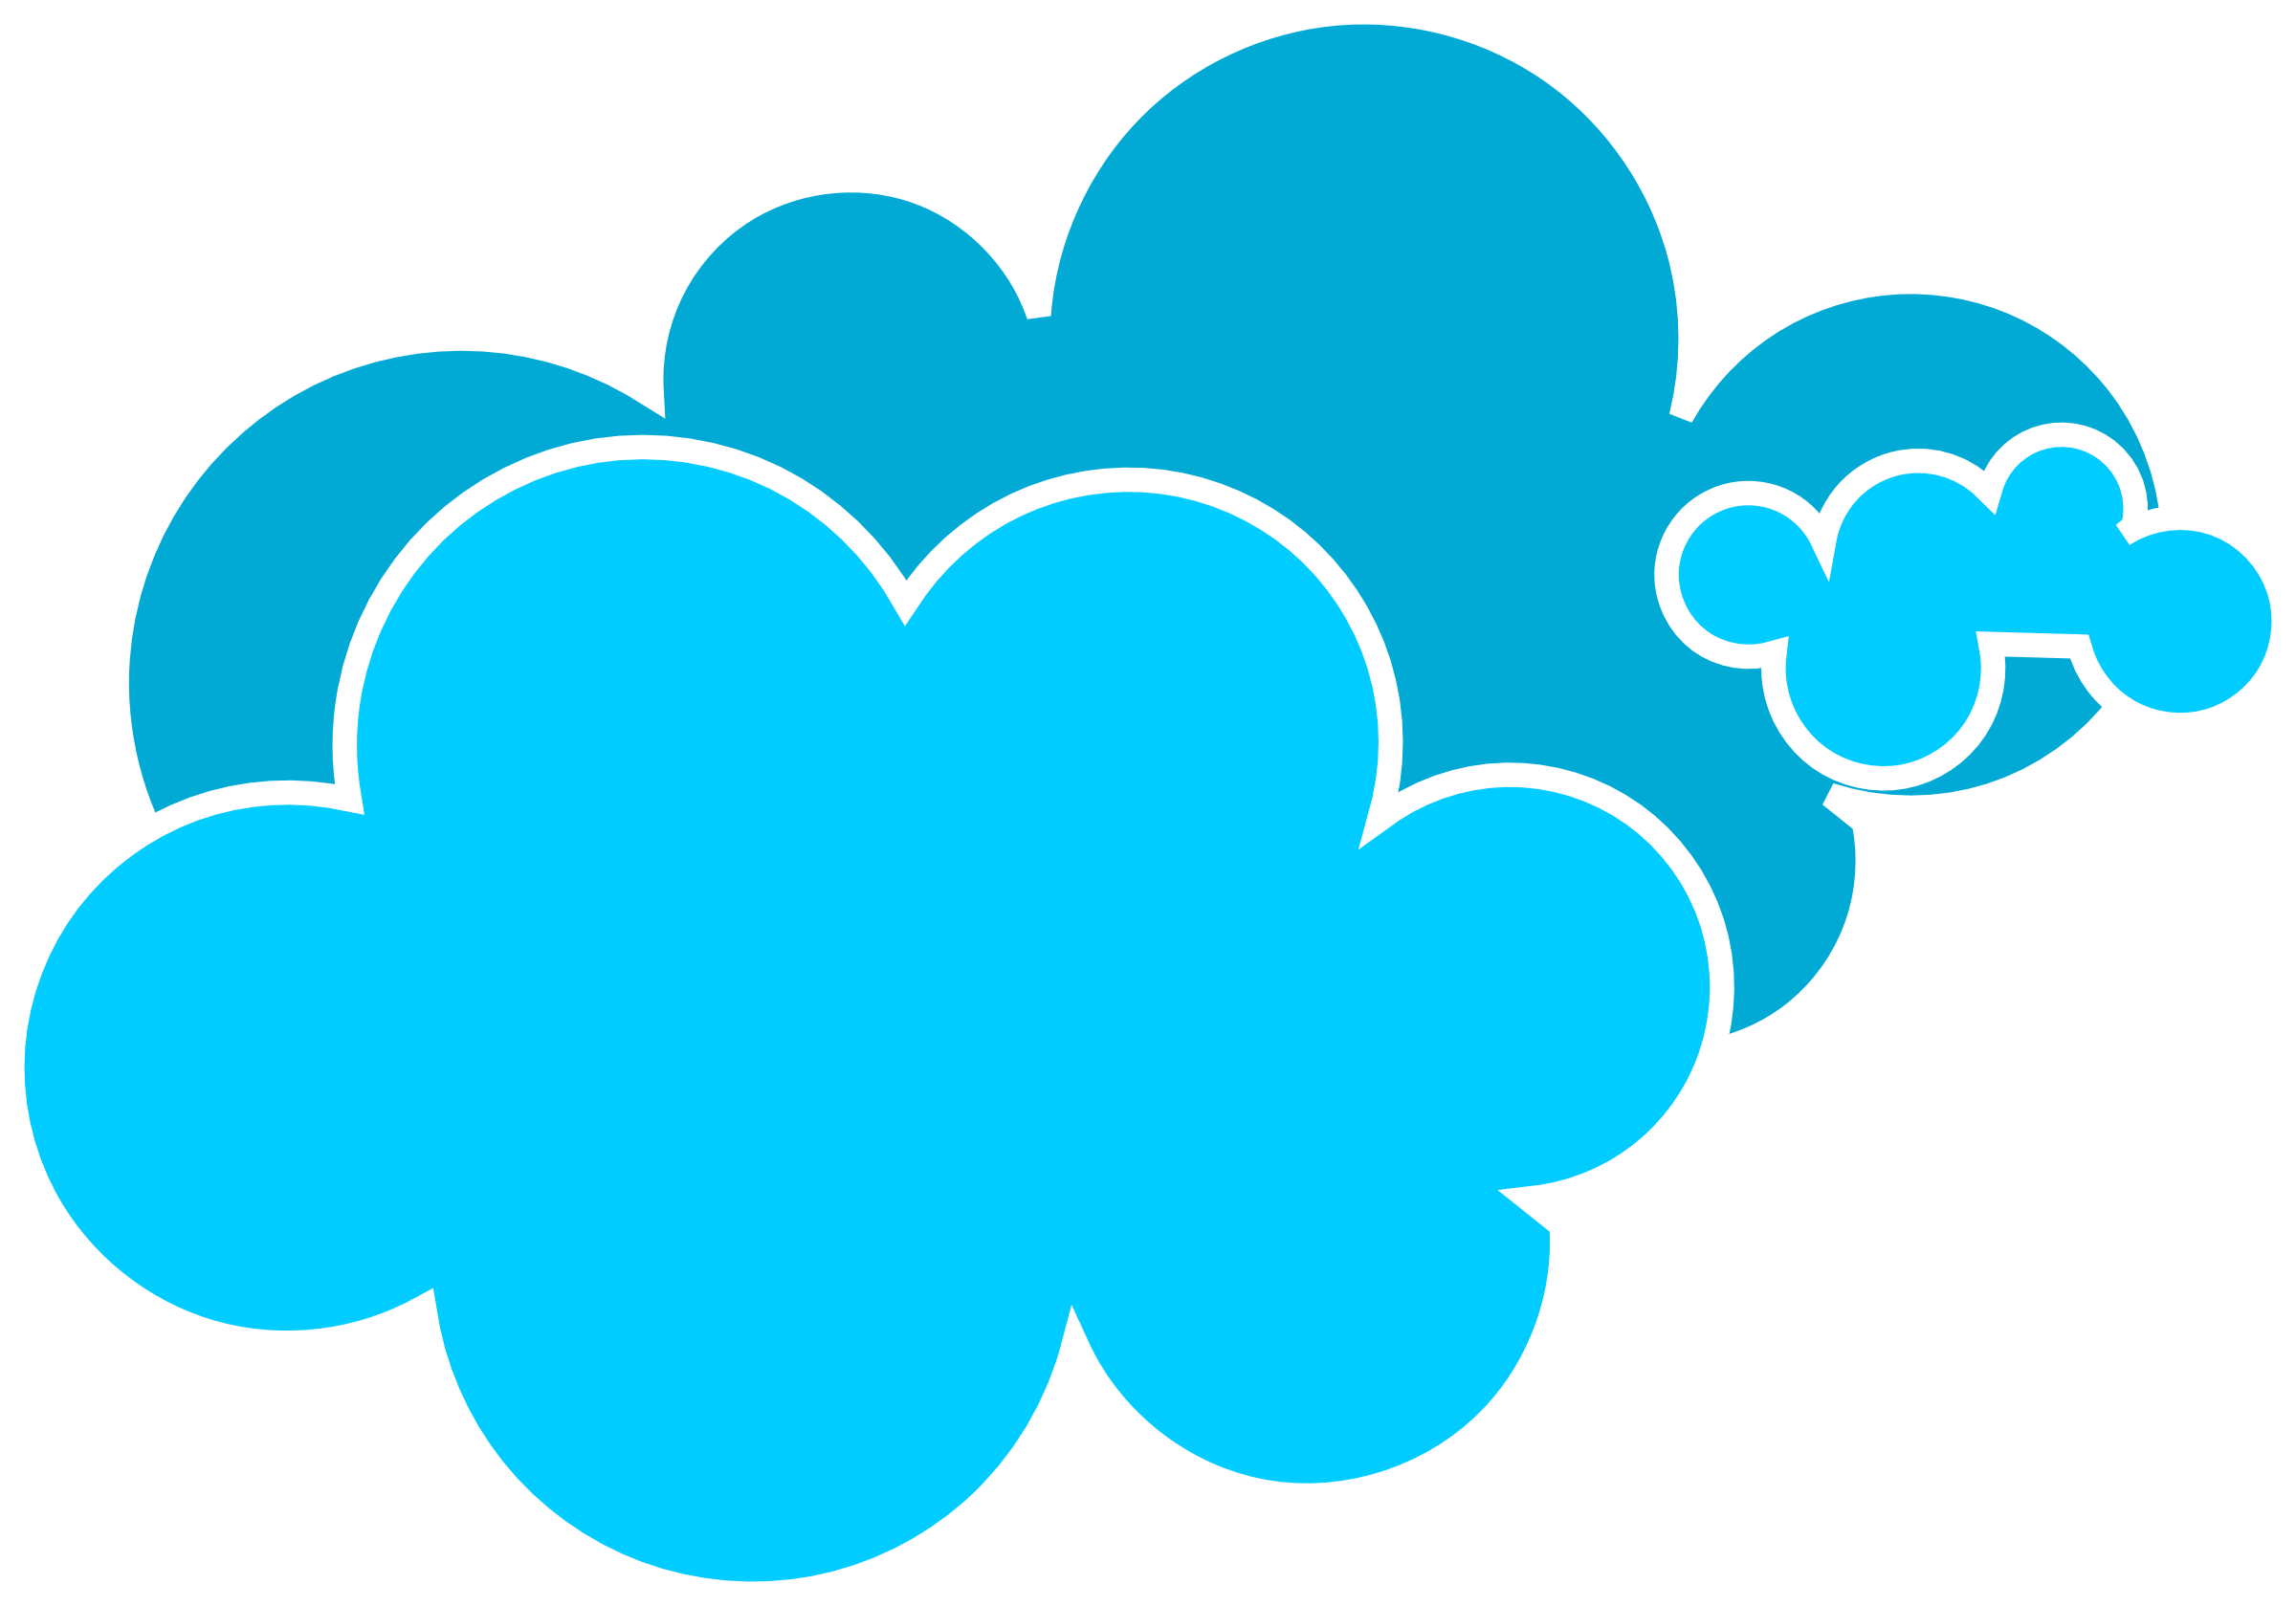 Clouds images clipart vector library library Pin by Cloud Clipart on Cloud Clipart in 2019   Clouds, Free vector ... vector library library